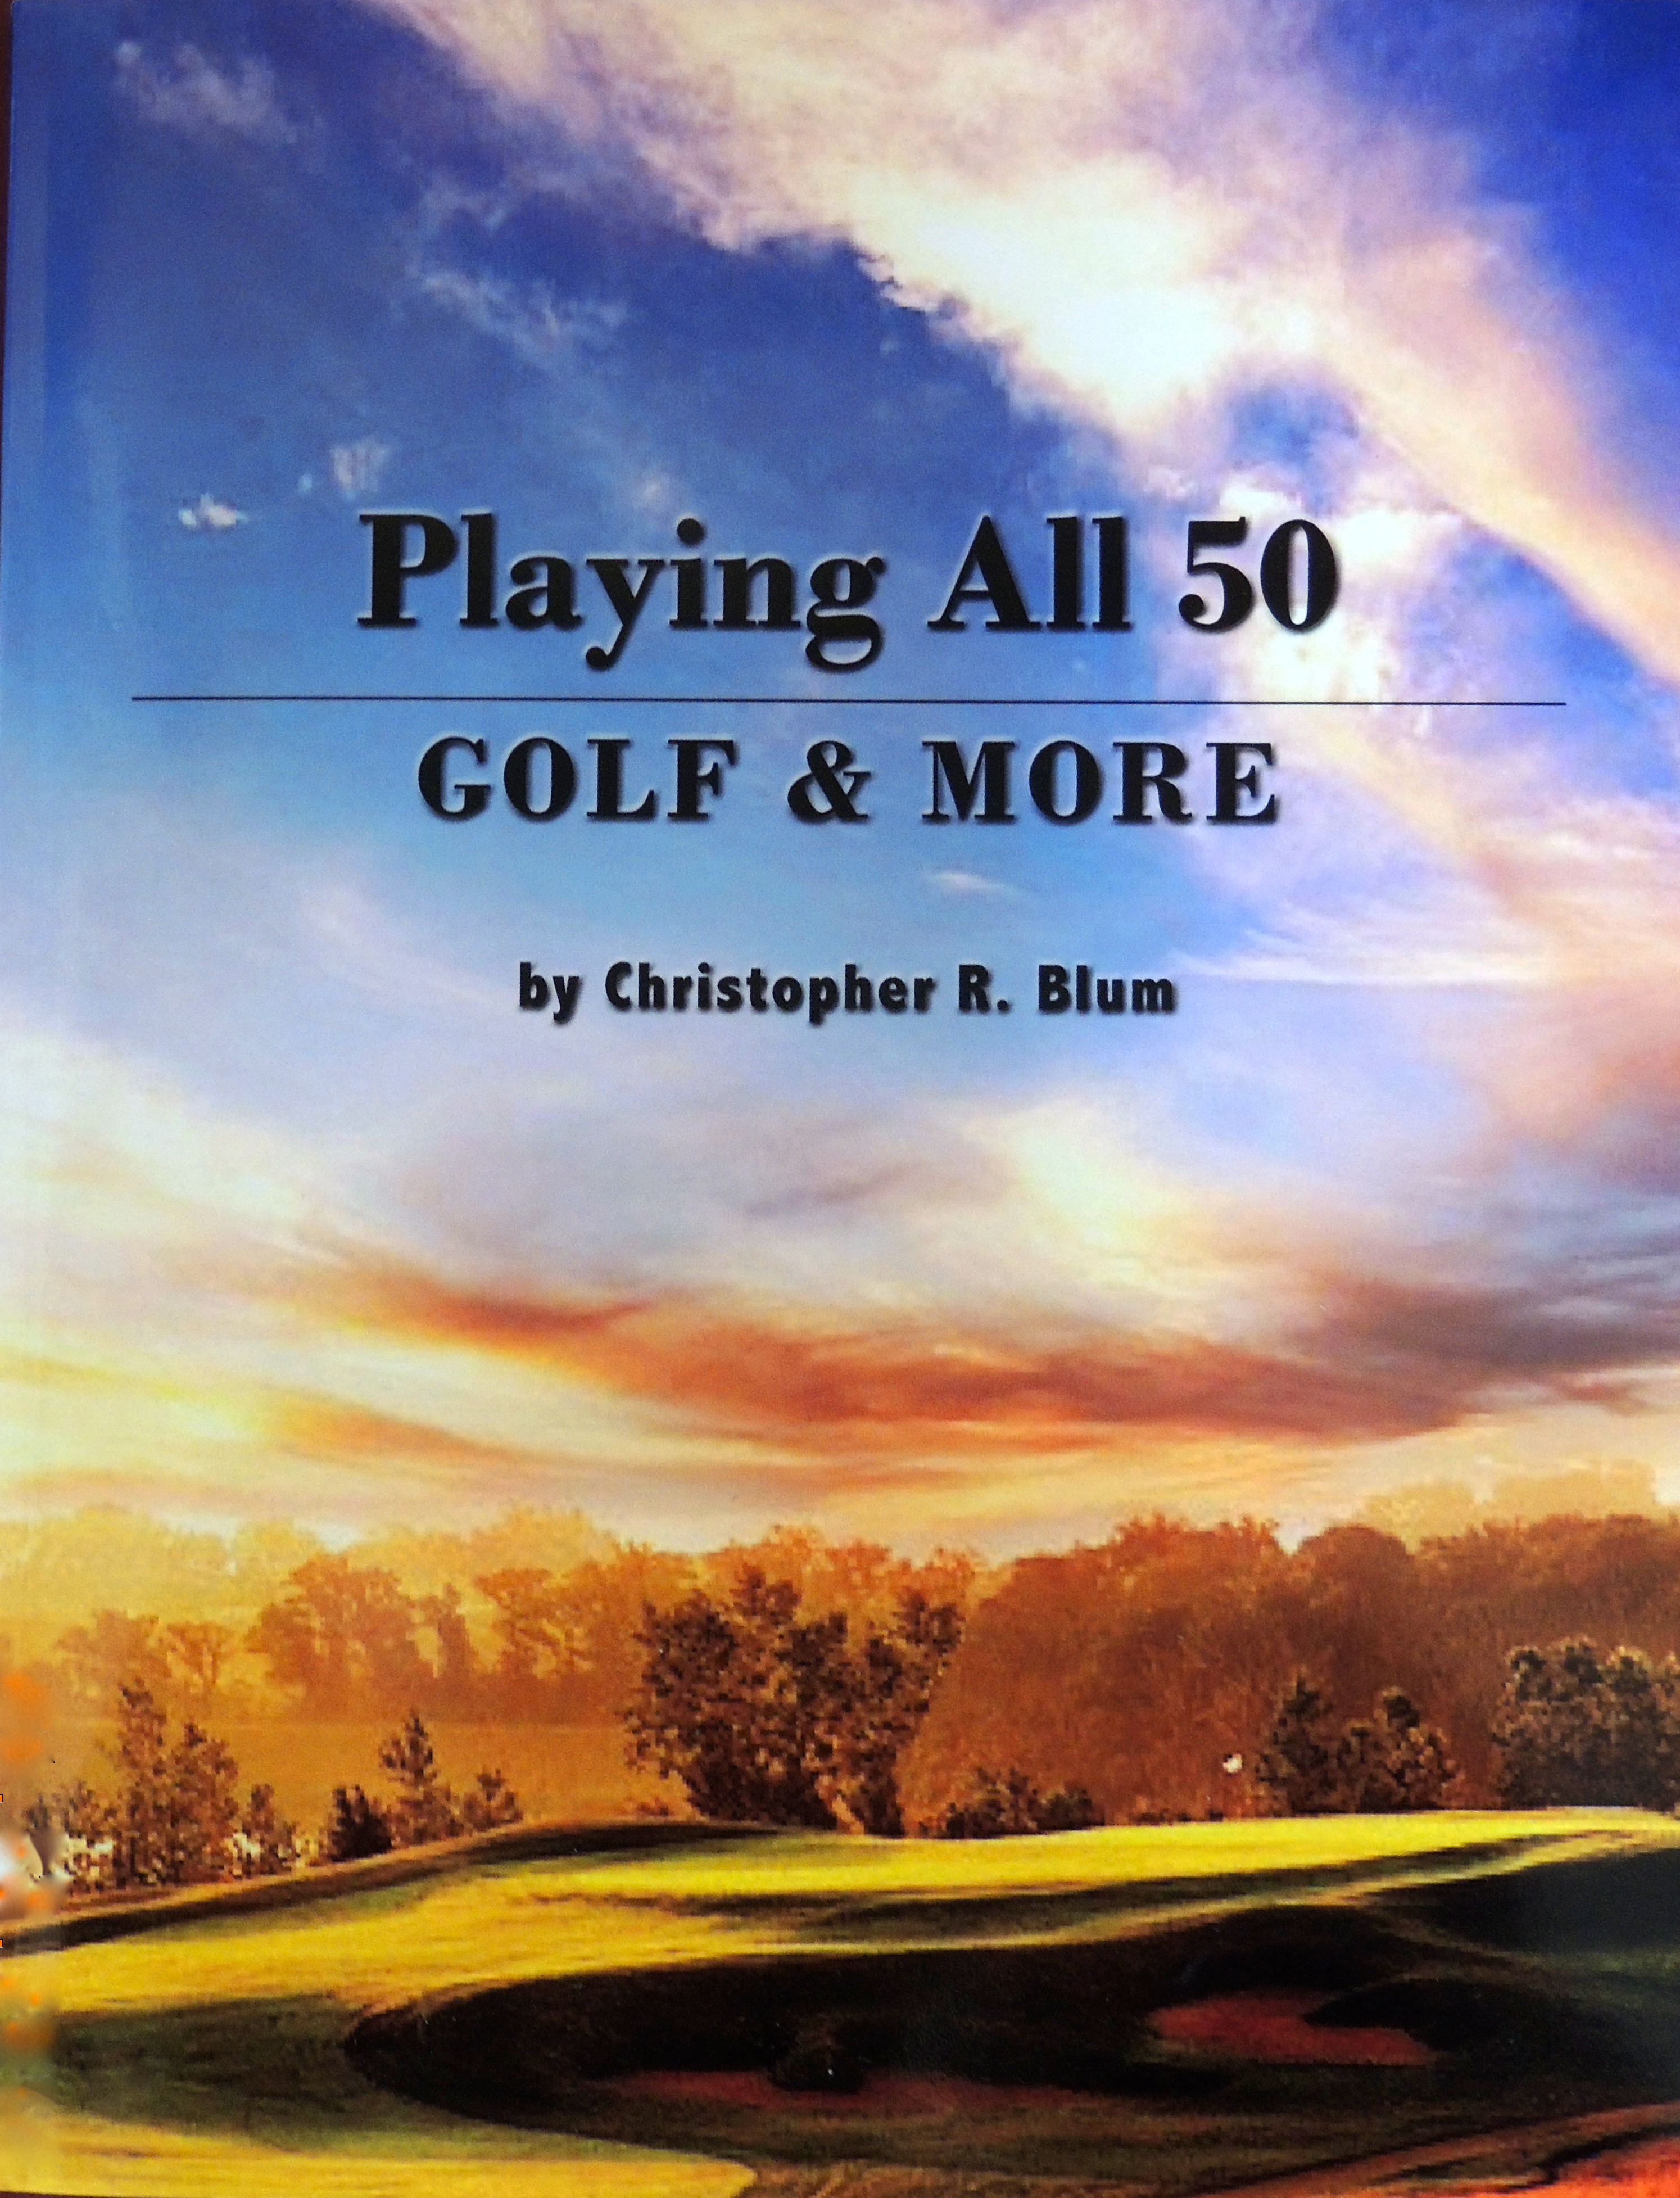 Playing All 50 - Golf & More